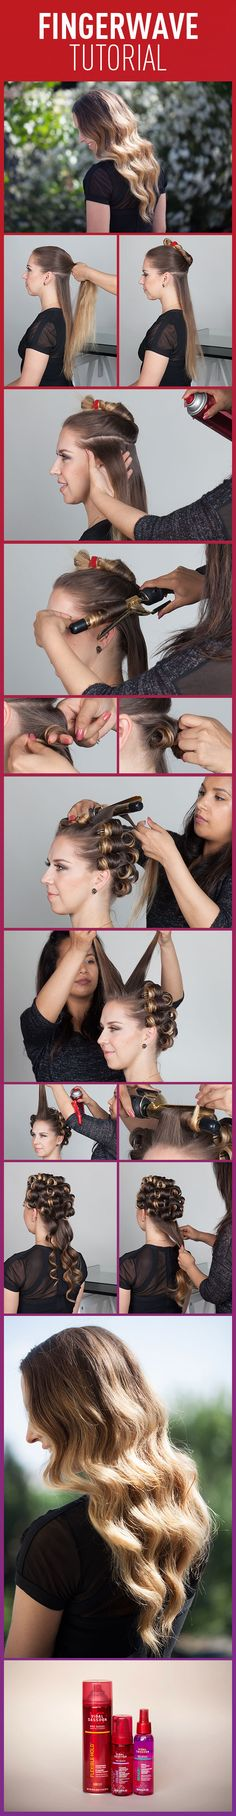 How To Finger Wave: Get Inspired By Our Tutorial and Enter to Win Vidal Sassoon Pro Series' Giveaway!